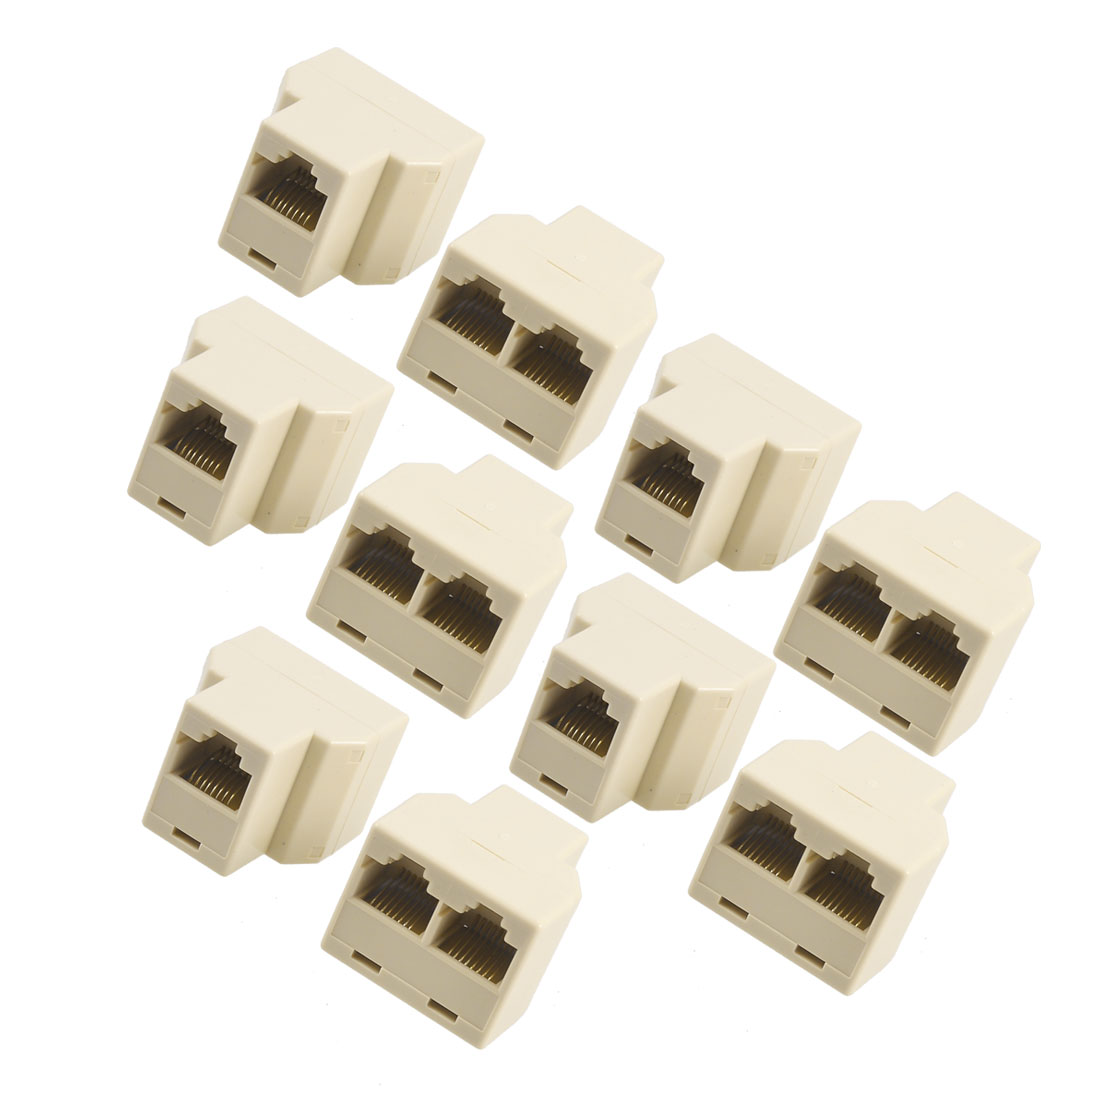 RJ45 3 Way LAN Network Ethernet Splitter Extender Connector Beige 10 Pcs